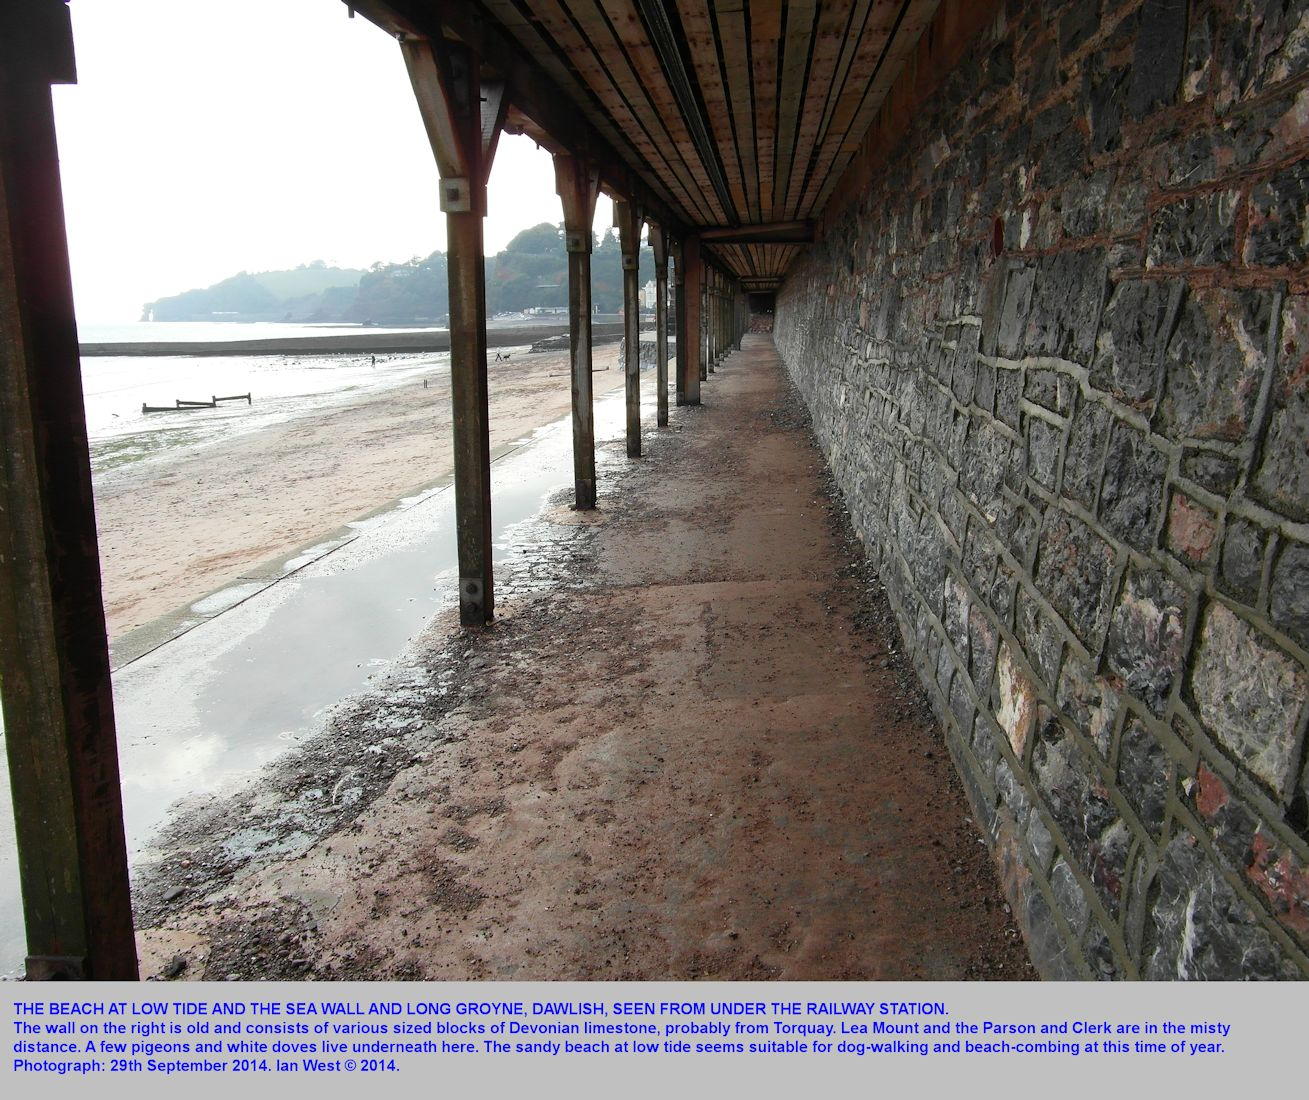 The beach at Dawlish seen from beneath the Railway Station at Dawlish, Devon, 29th September 2014